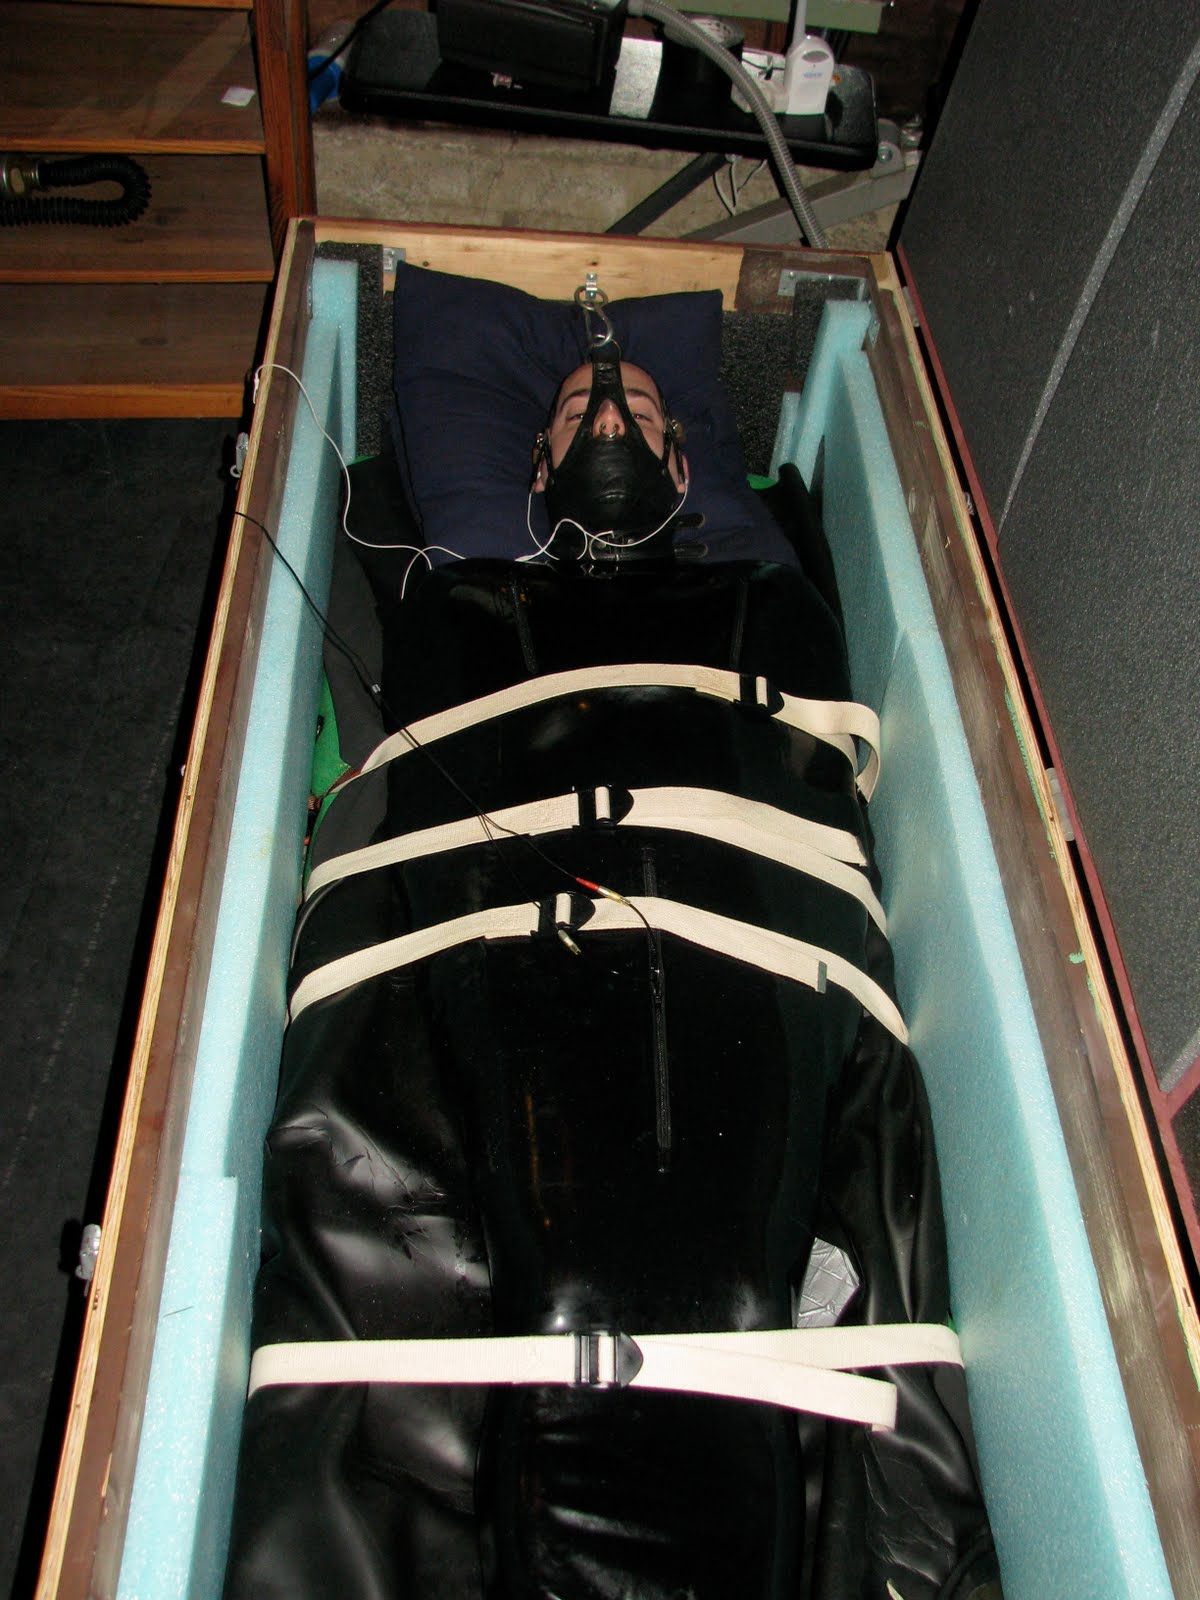 Bondage in a box